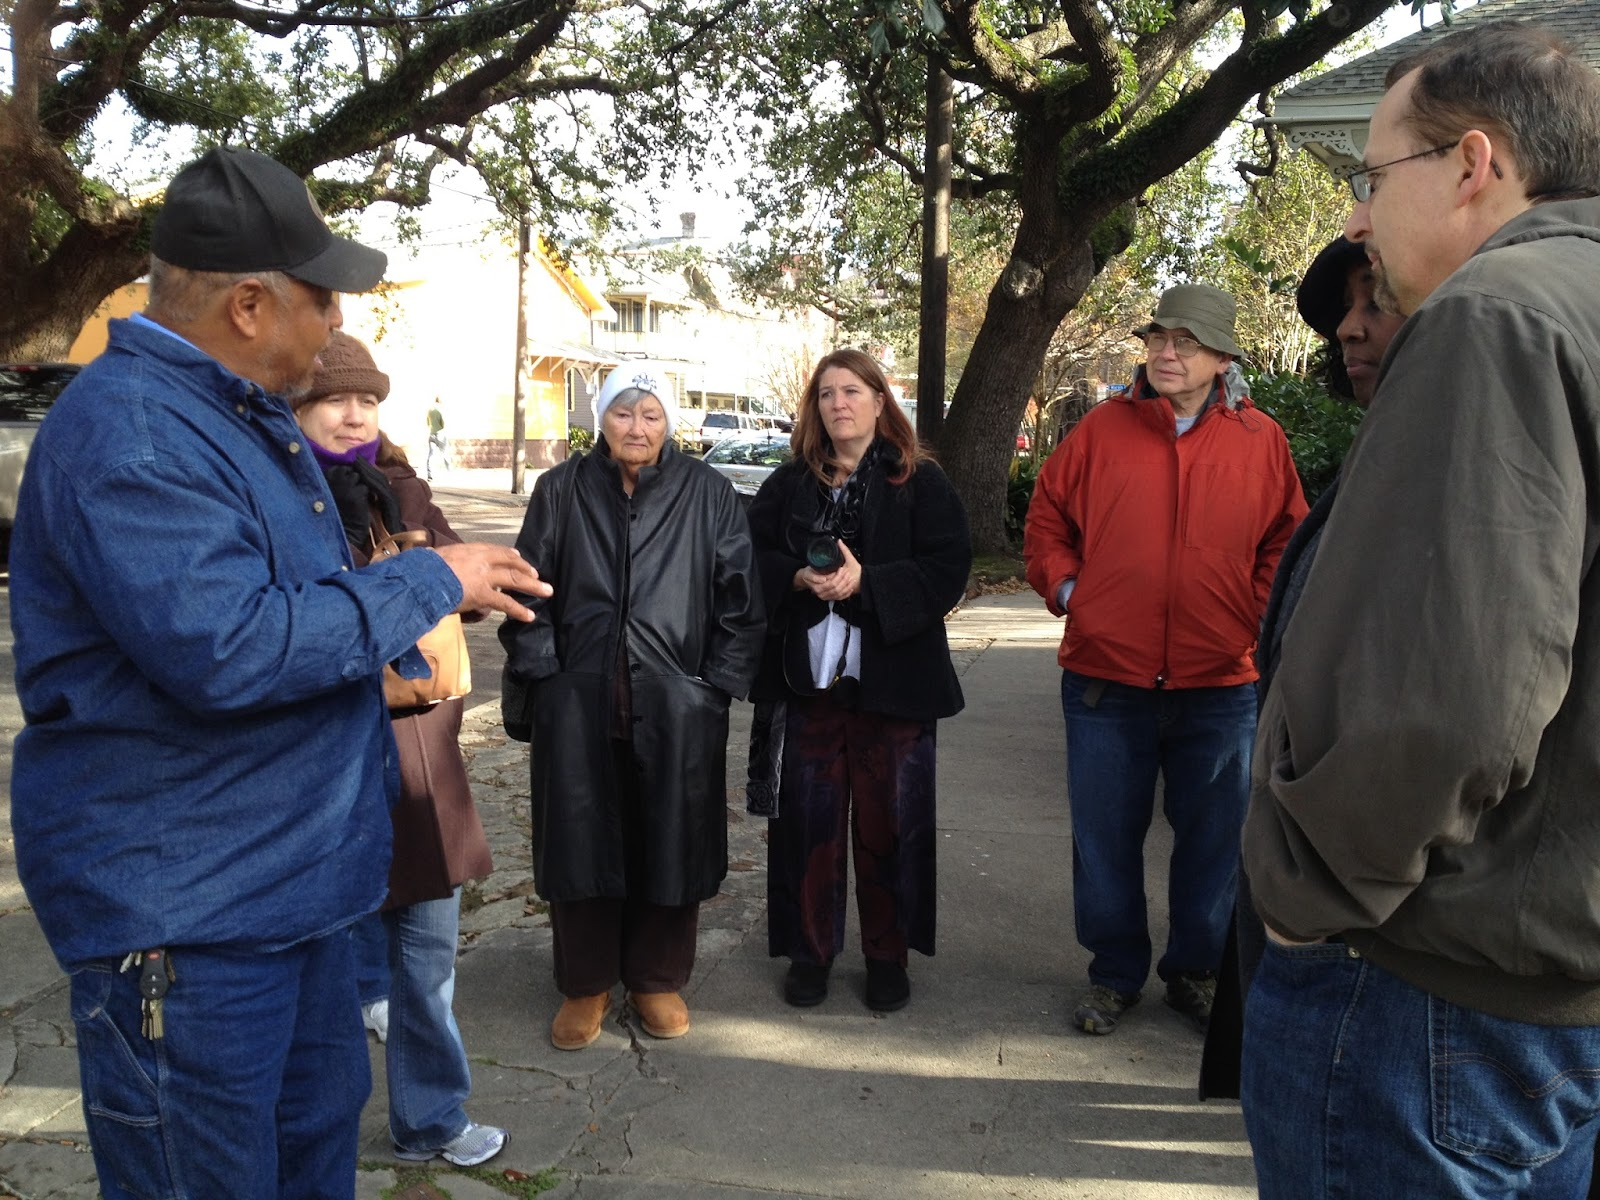 Treme Walking Tour Guide sharing history of area